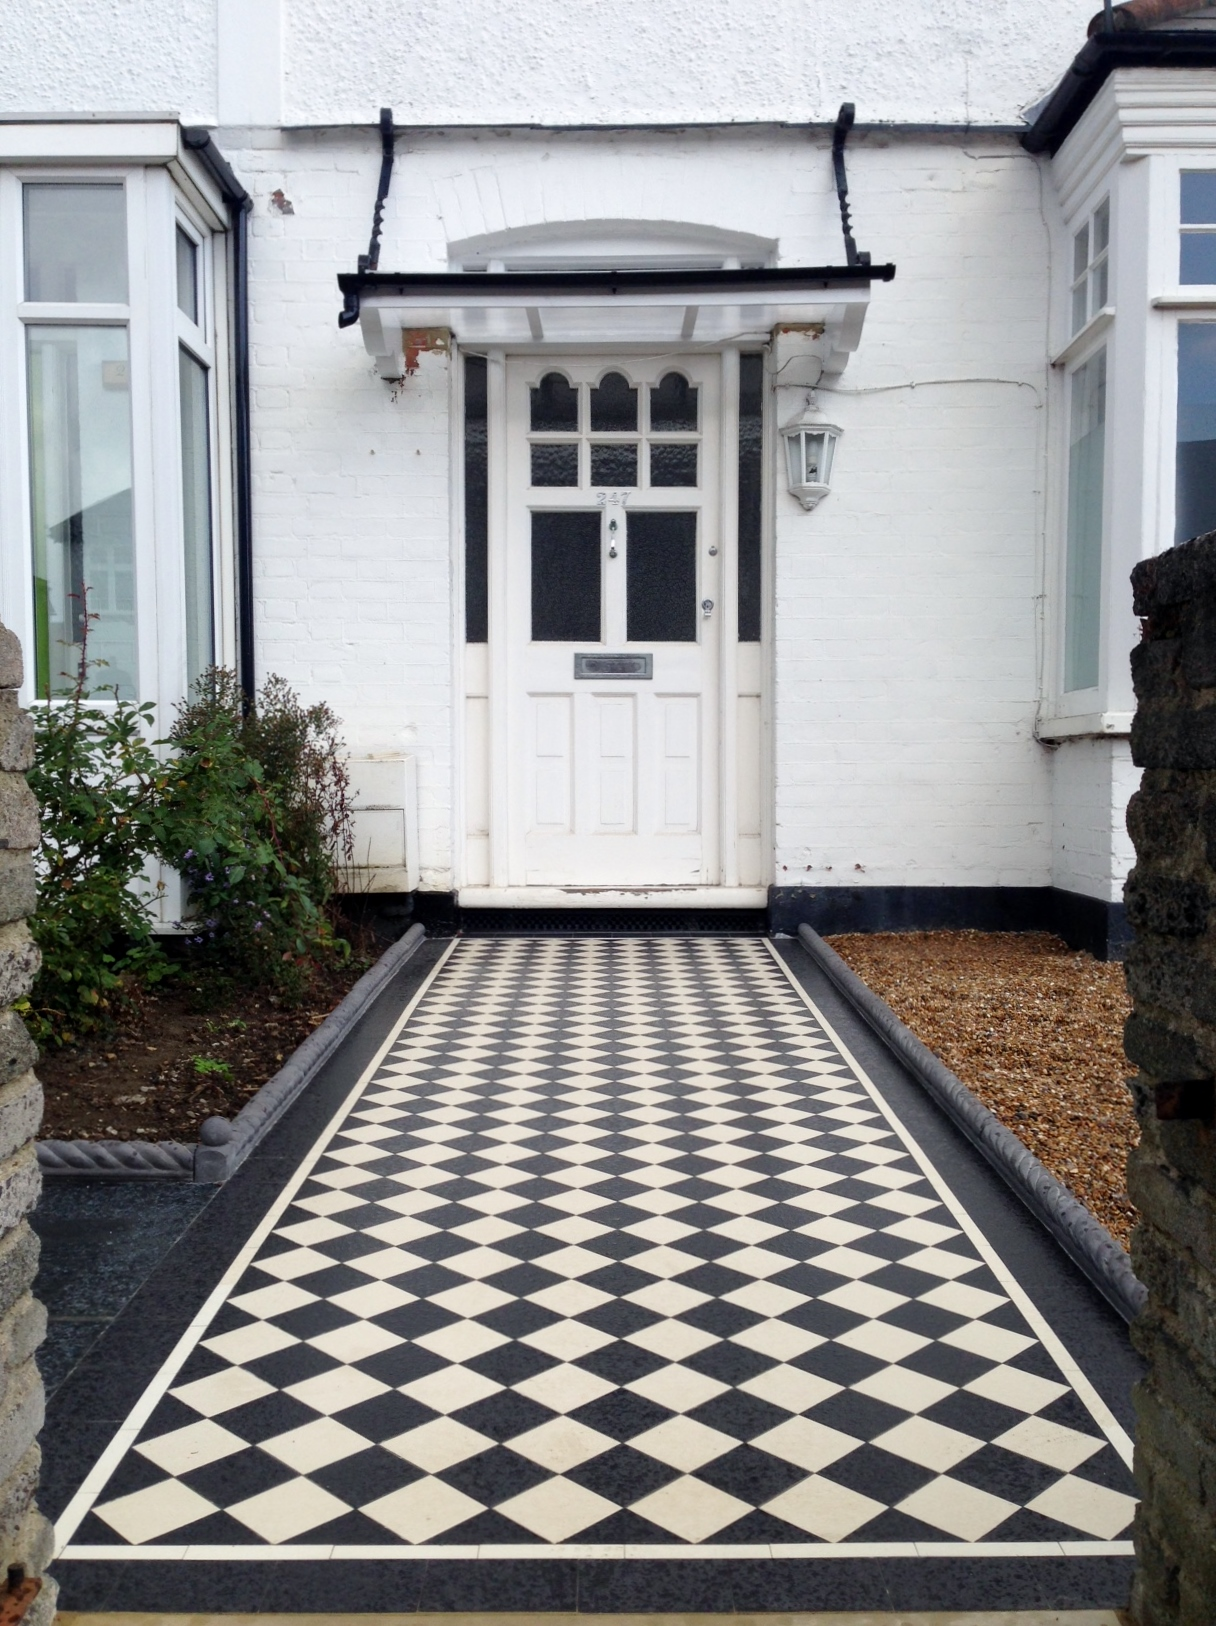 Victorian black and white mosaic tile garden path rope edge tile brockley lea catford london (8)